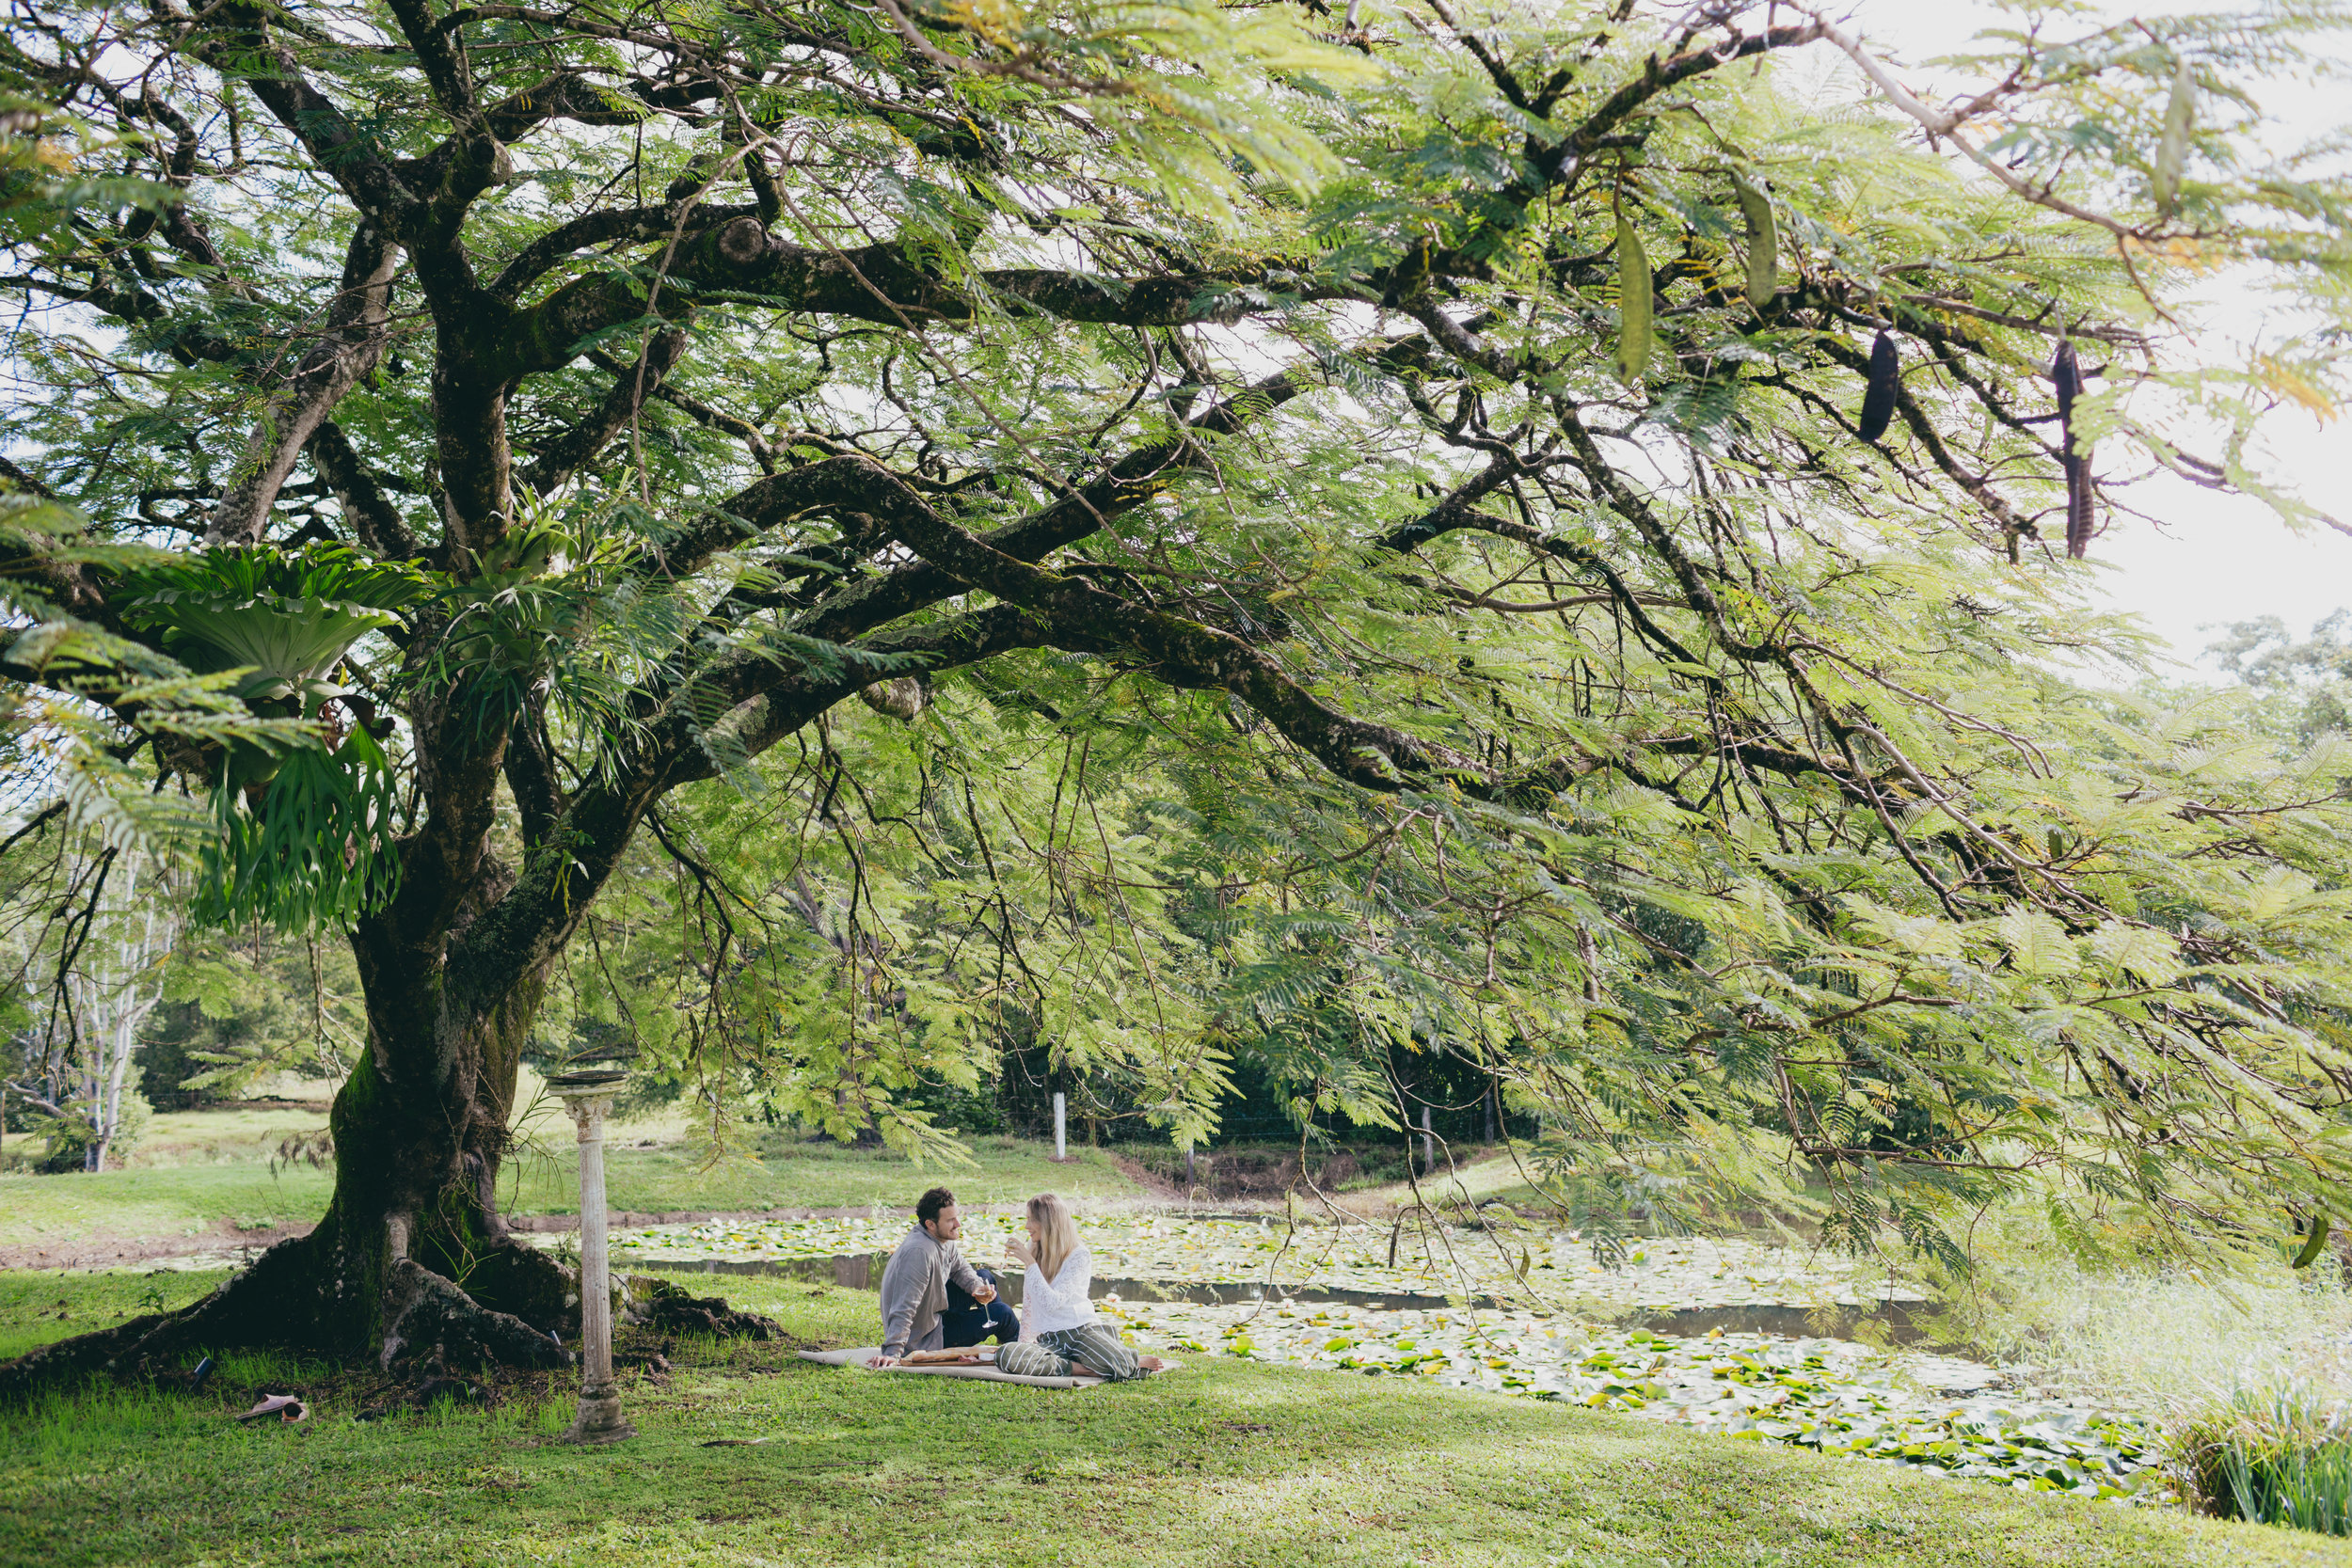 Couple having a picnic under an old large tree next to body of water.